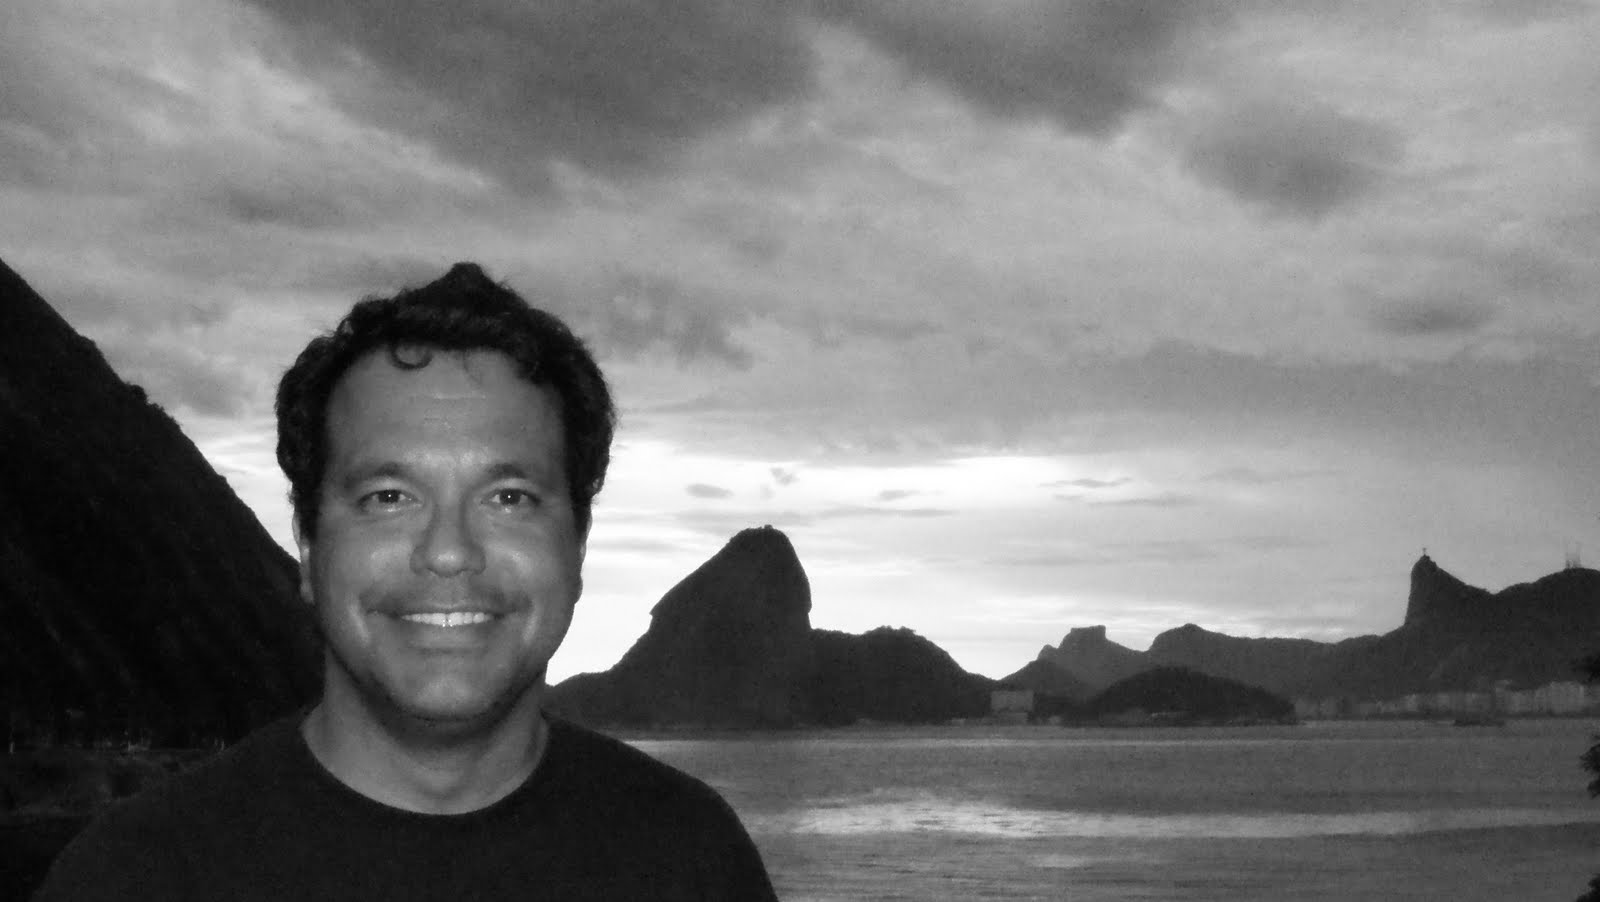 rafa guests in rio niteroi some good surprises in a very